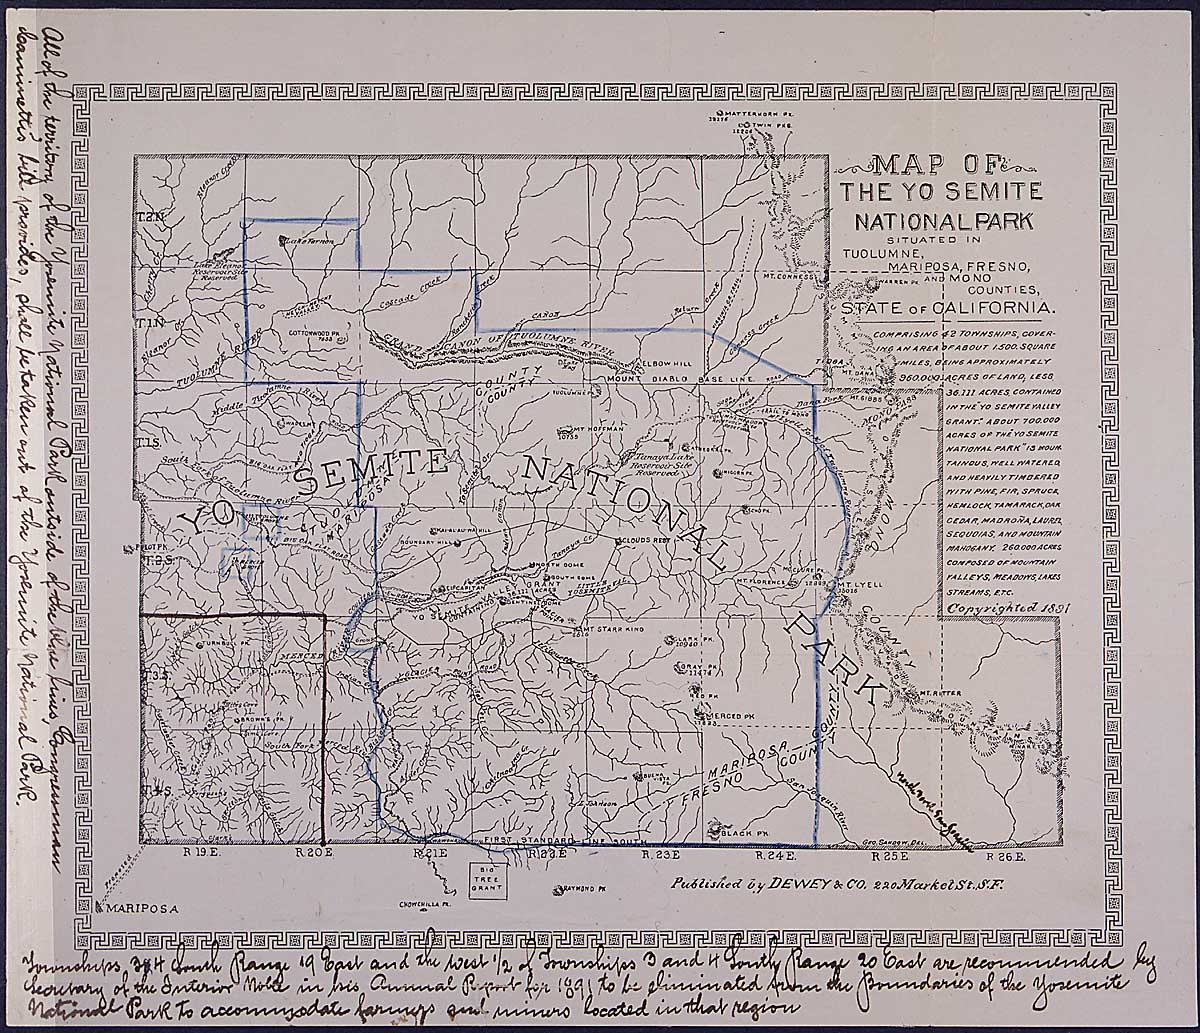 Petition and map from John Muir and other founders of Sierra Club protesting a bill to reduce the size of Yosemite National Park, 01/02/1893 (attached map)